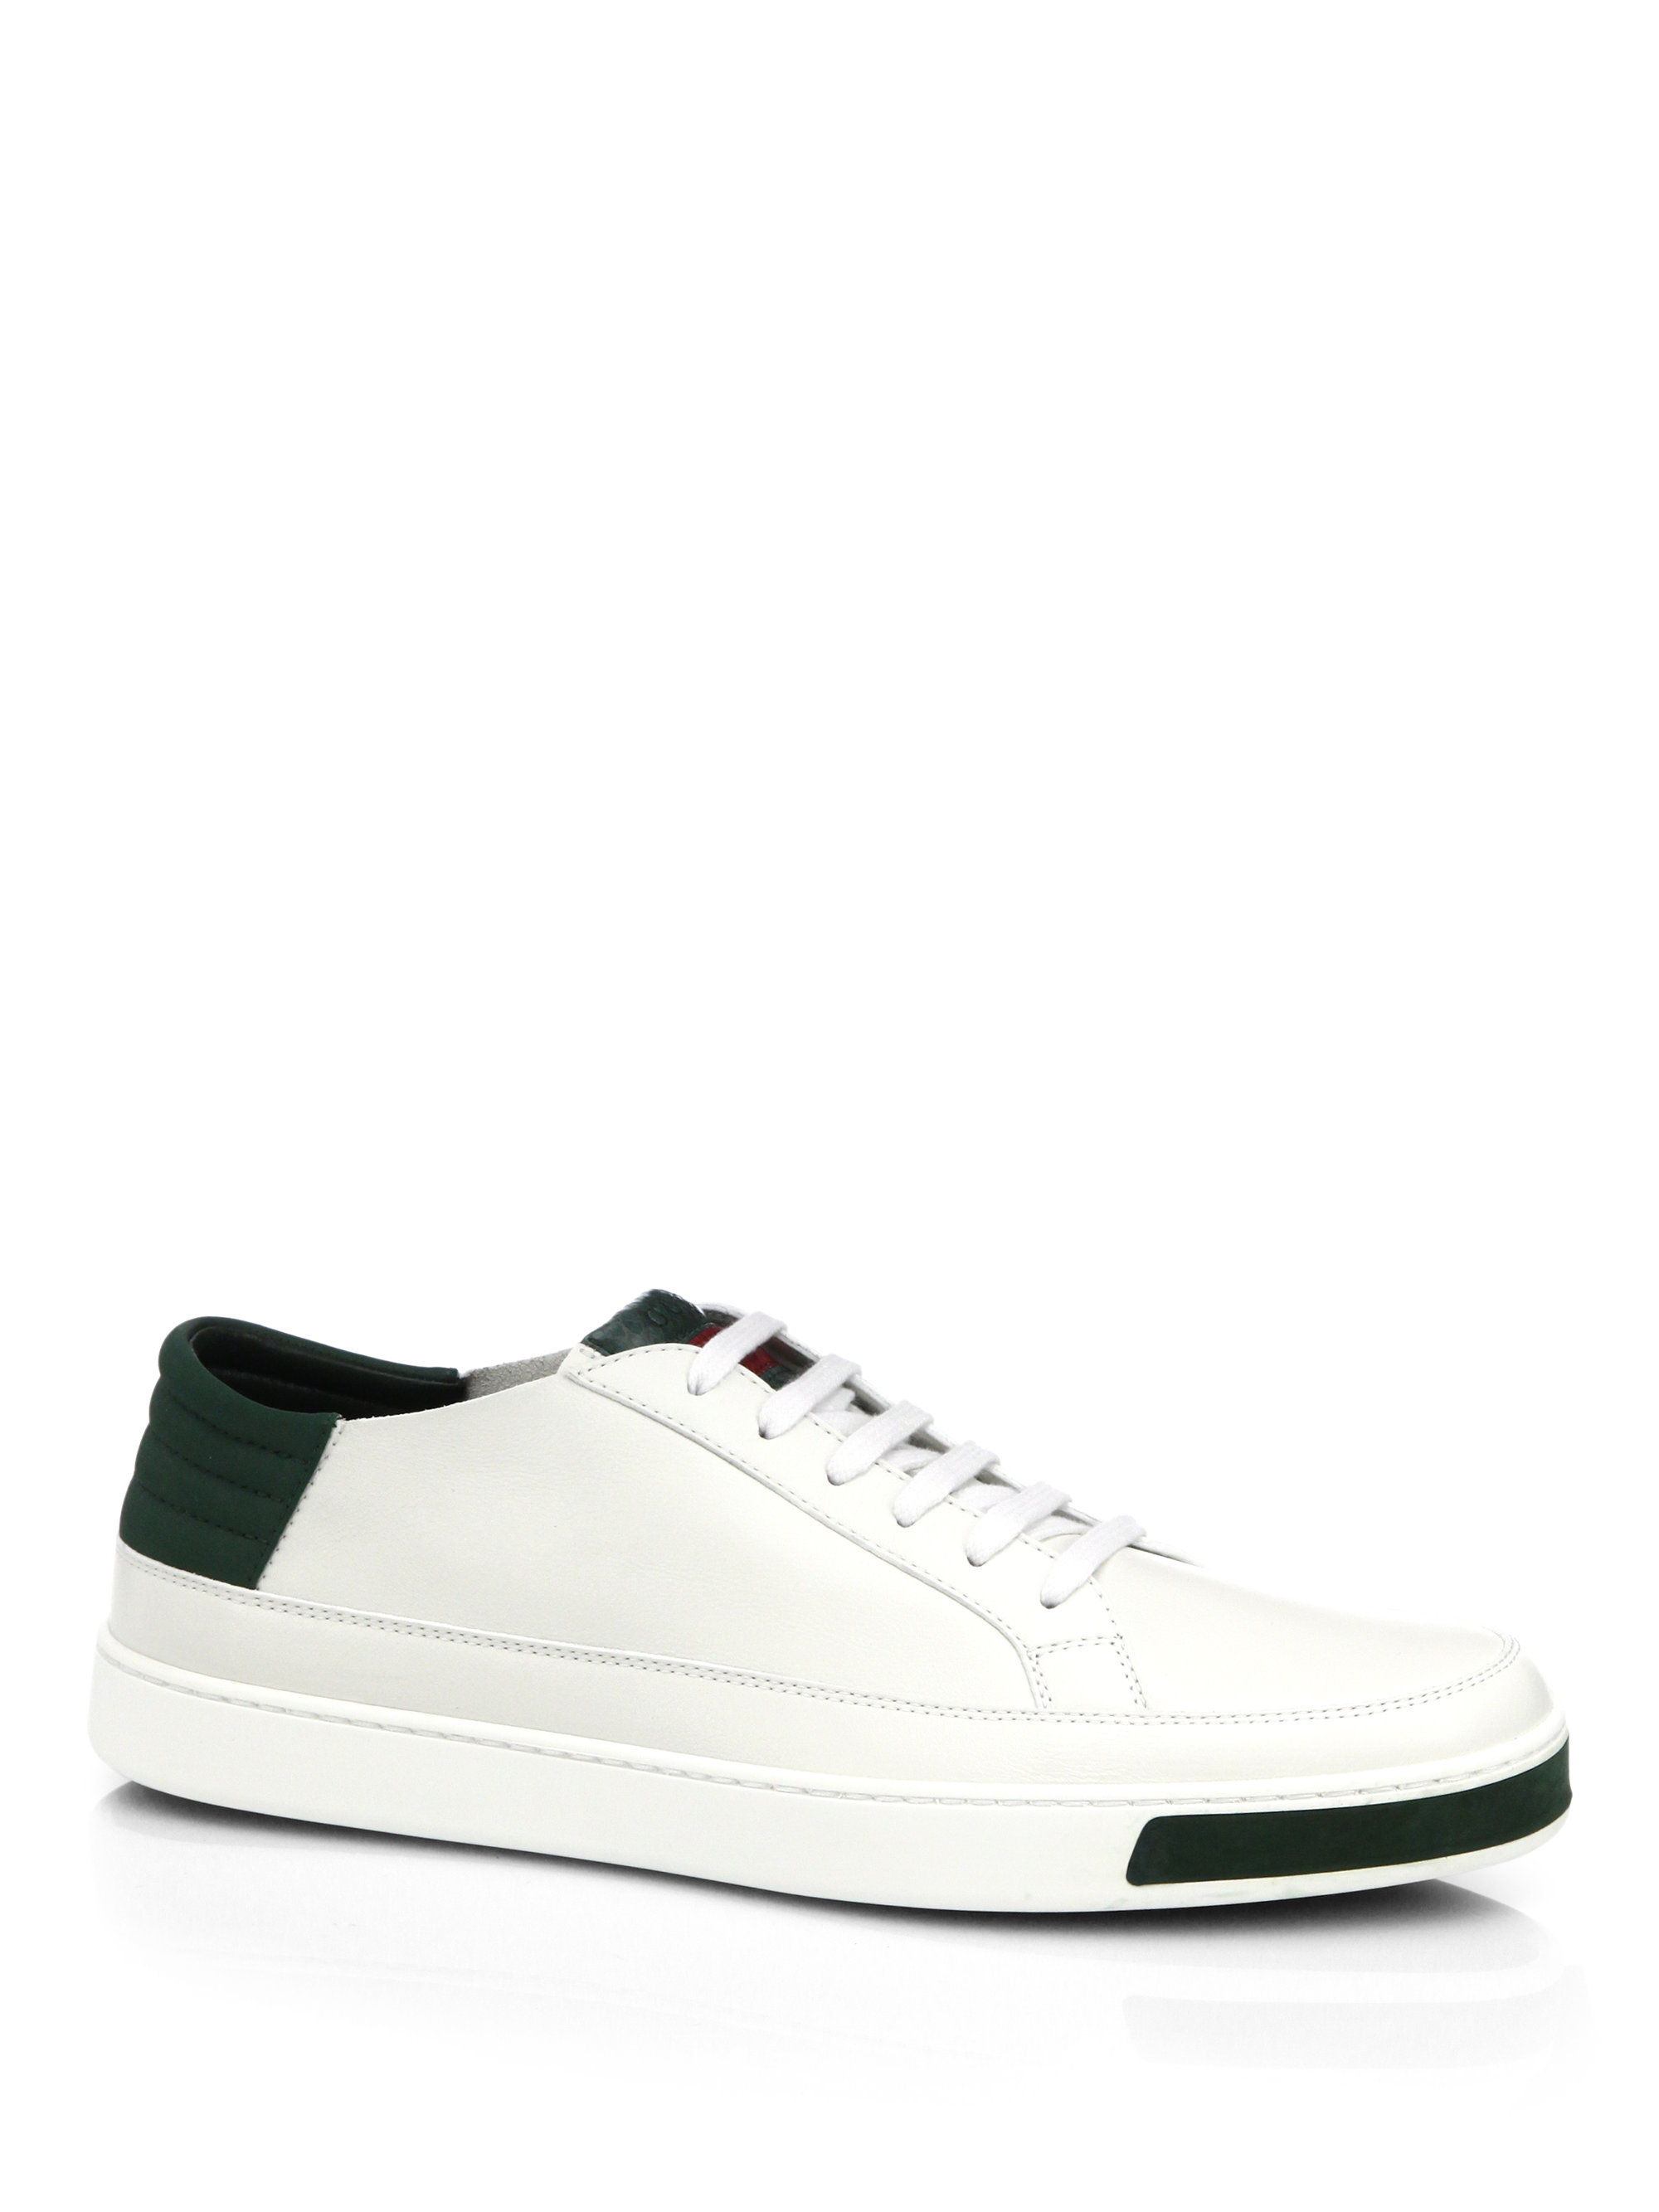 0fc678b972309 In Top For amp  Lyst Low Lizard Men Sneakers White Suede Gucci Leather  48fqSA